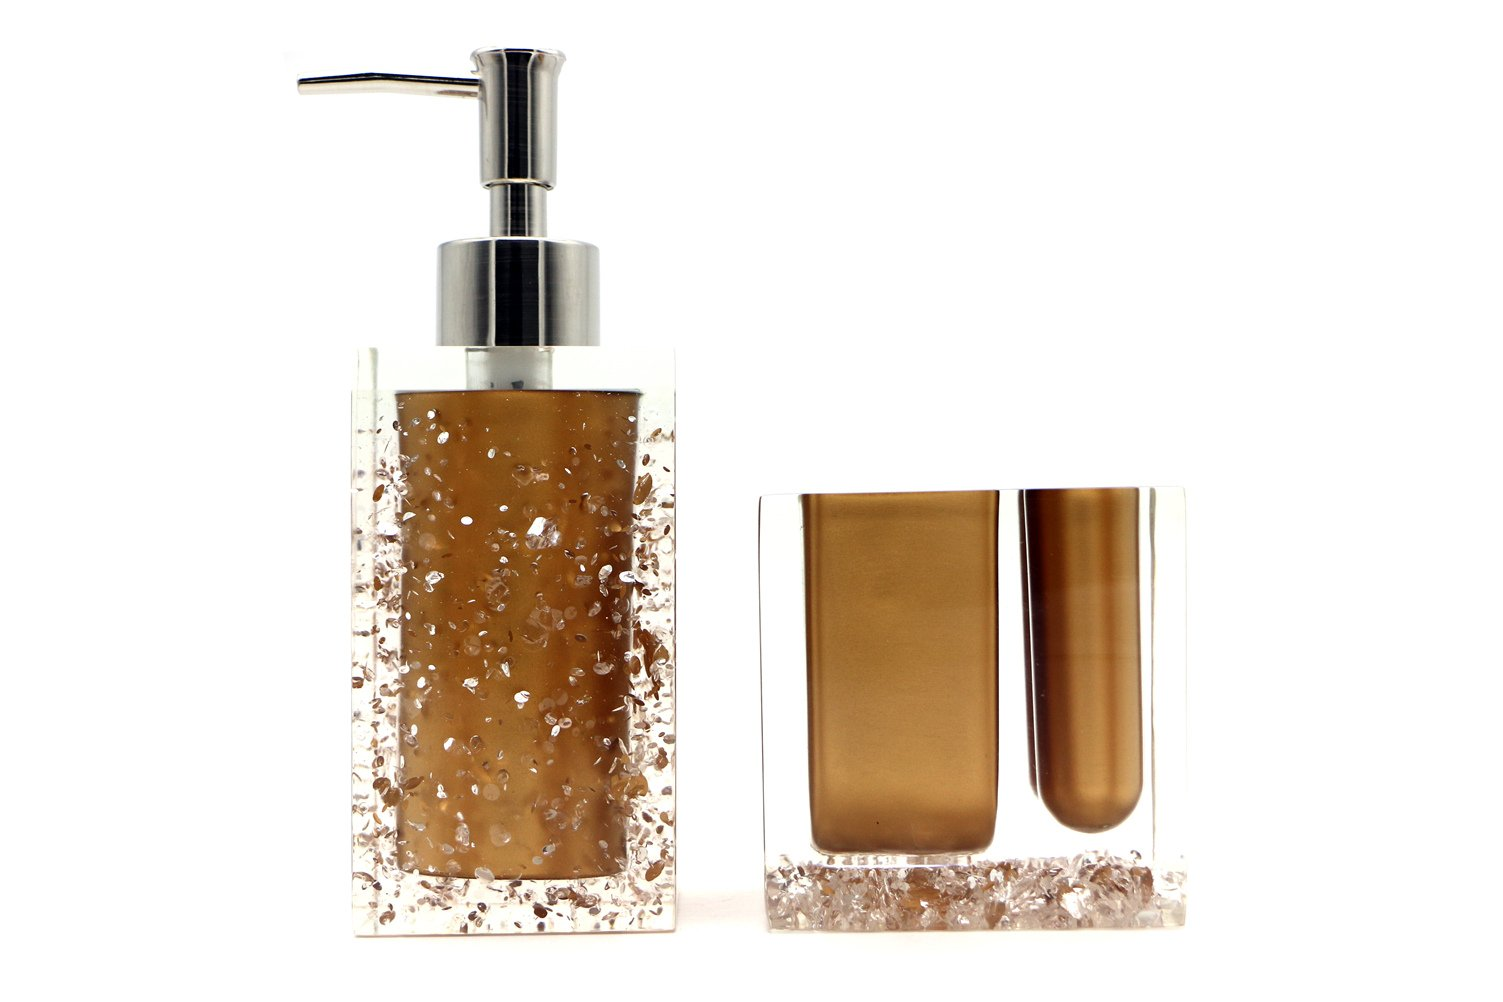 Hot San Resin 5 Pieces Bathroom Accessory Set - Ice Crystal In Gold Design Ensemble,Bathroom Vanities,Home Decor - Handmade items,made of resin material,easy to clean and durable Available in multiple colors to match your bathroom's color Includes 2x tumblers;soap dish;liquid soap dispenser;toothbrush holder - bathroom-accessory-sets, bathroom-accessories, bathroom - 61ZZ6rAVaxL -